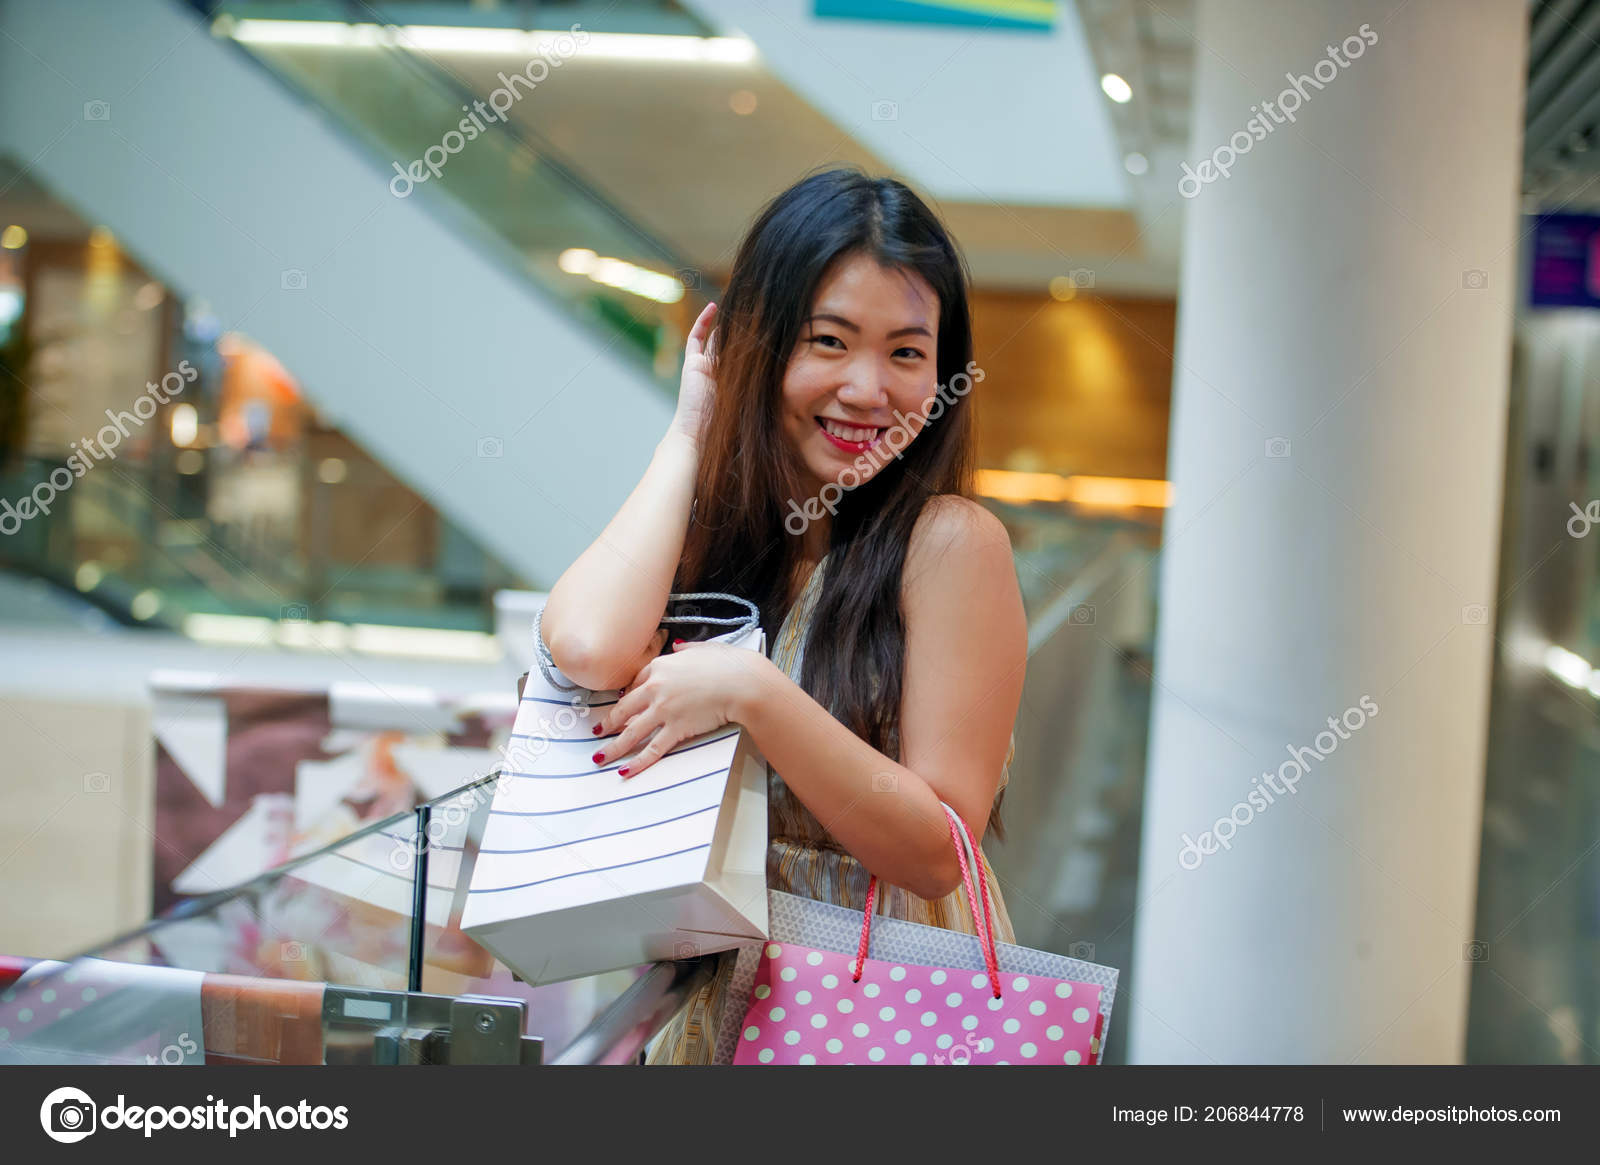 db7dabeec17 Lifestyle indoors portrait of young happy and beautiful Asian Korean woman  carrying shopping bags in mall buying cheerful walking around fashion store  ...